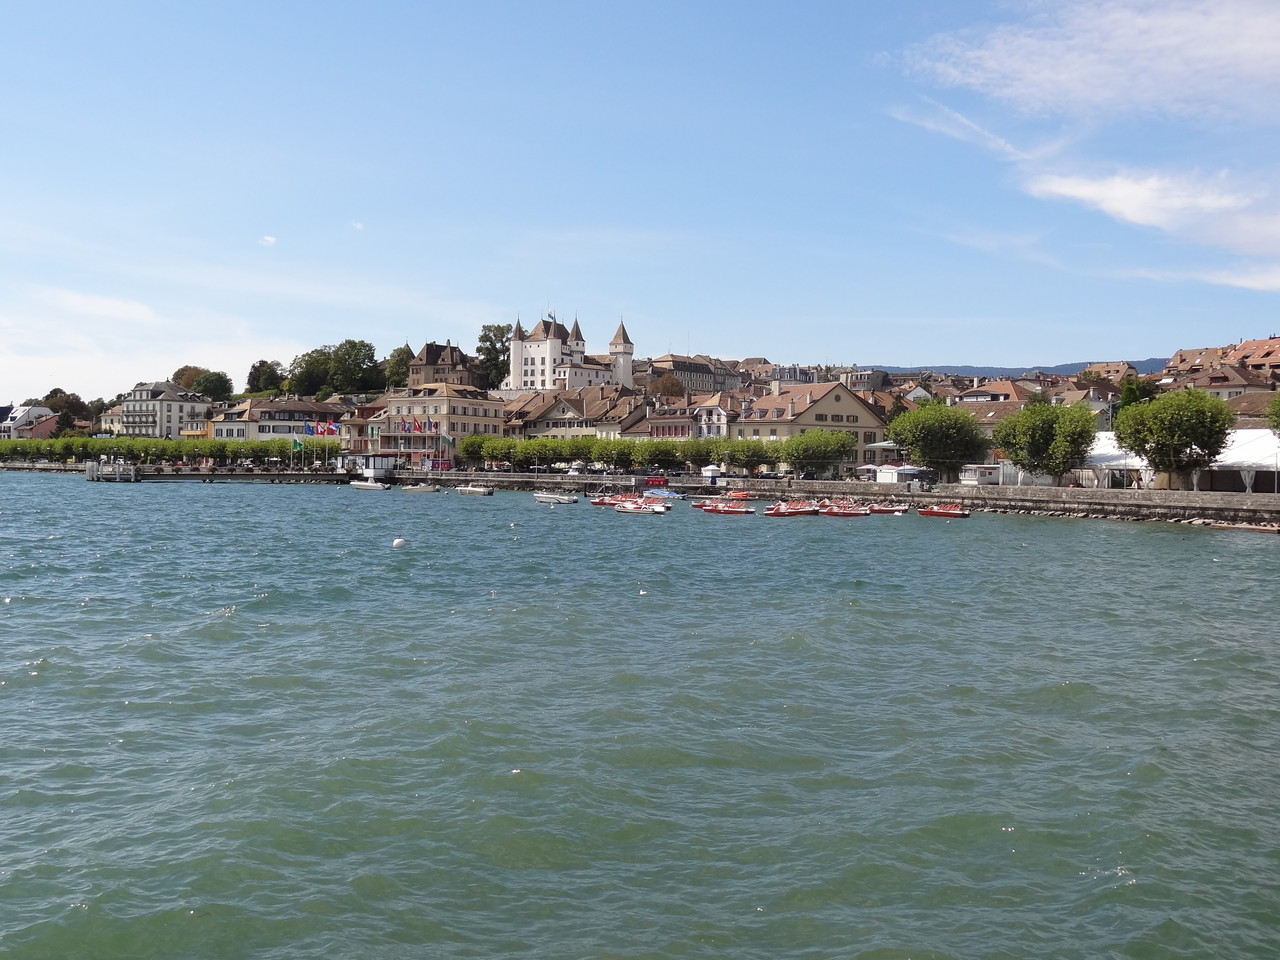 6. Halt in Nyon